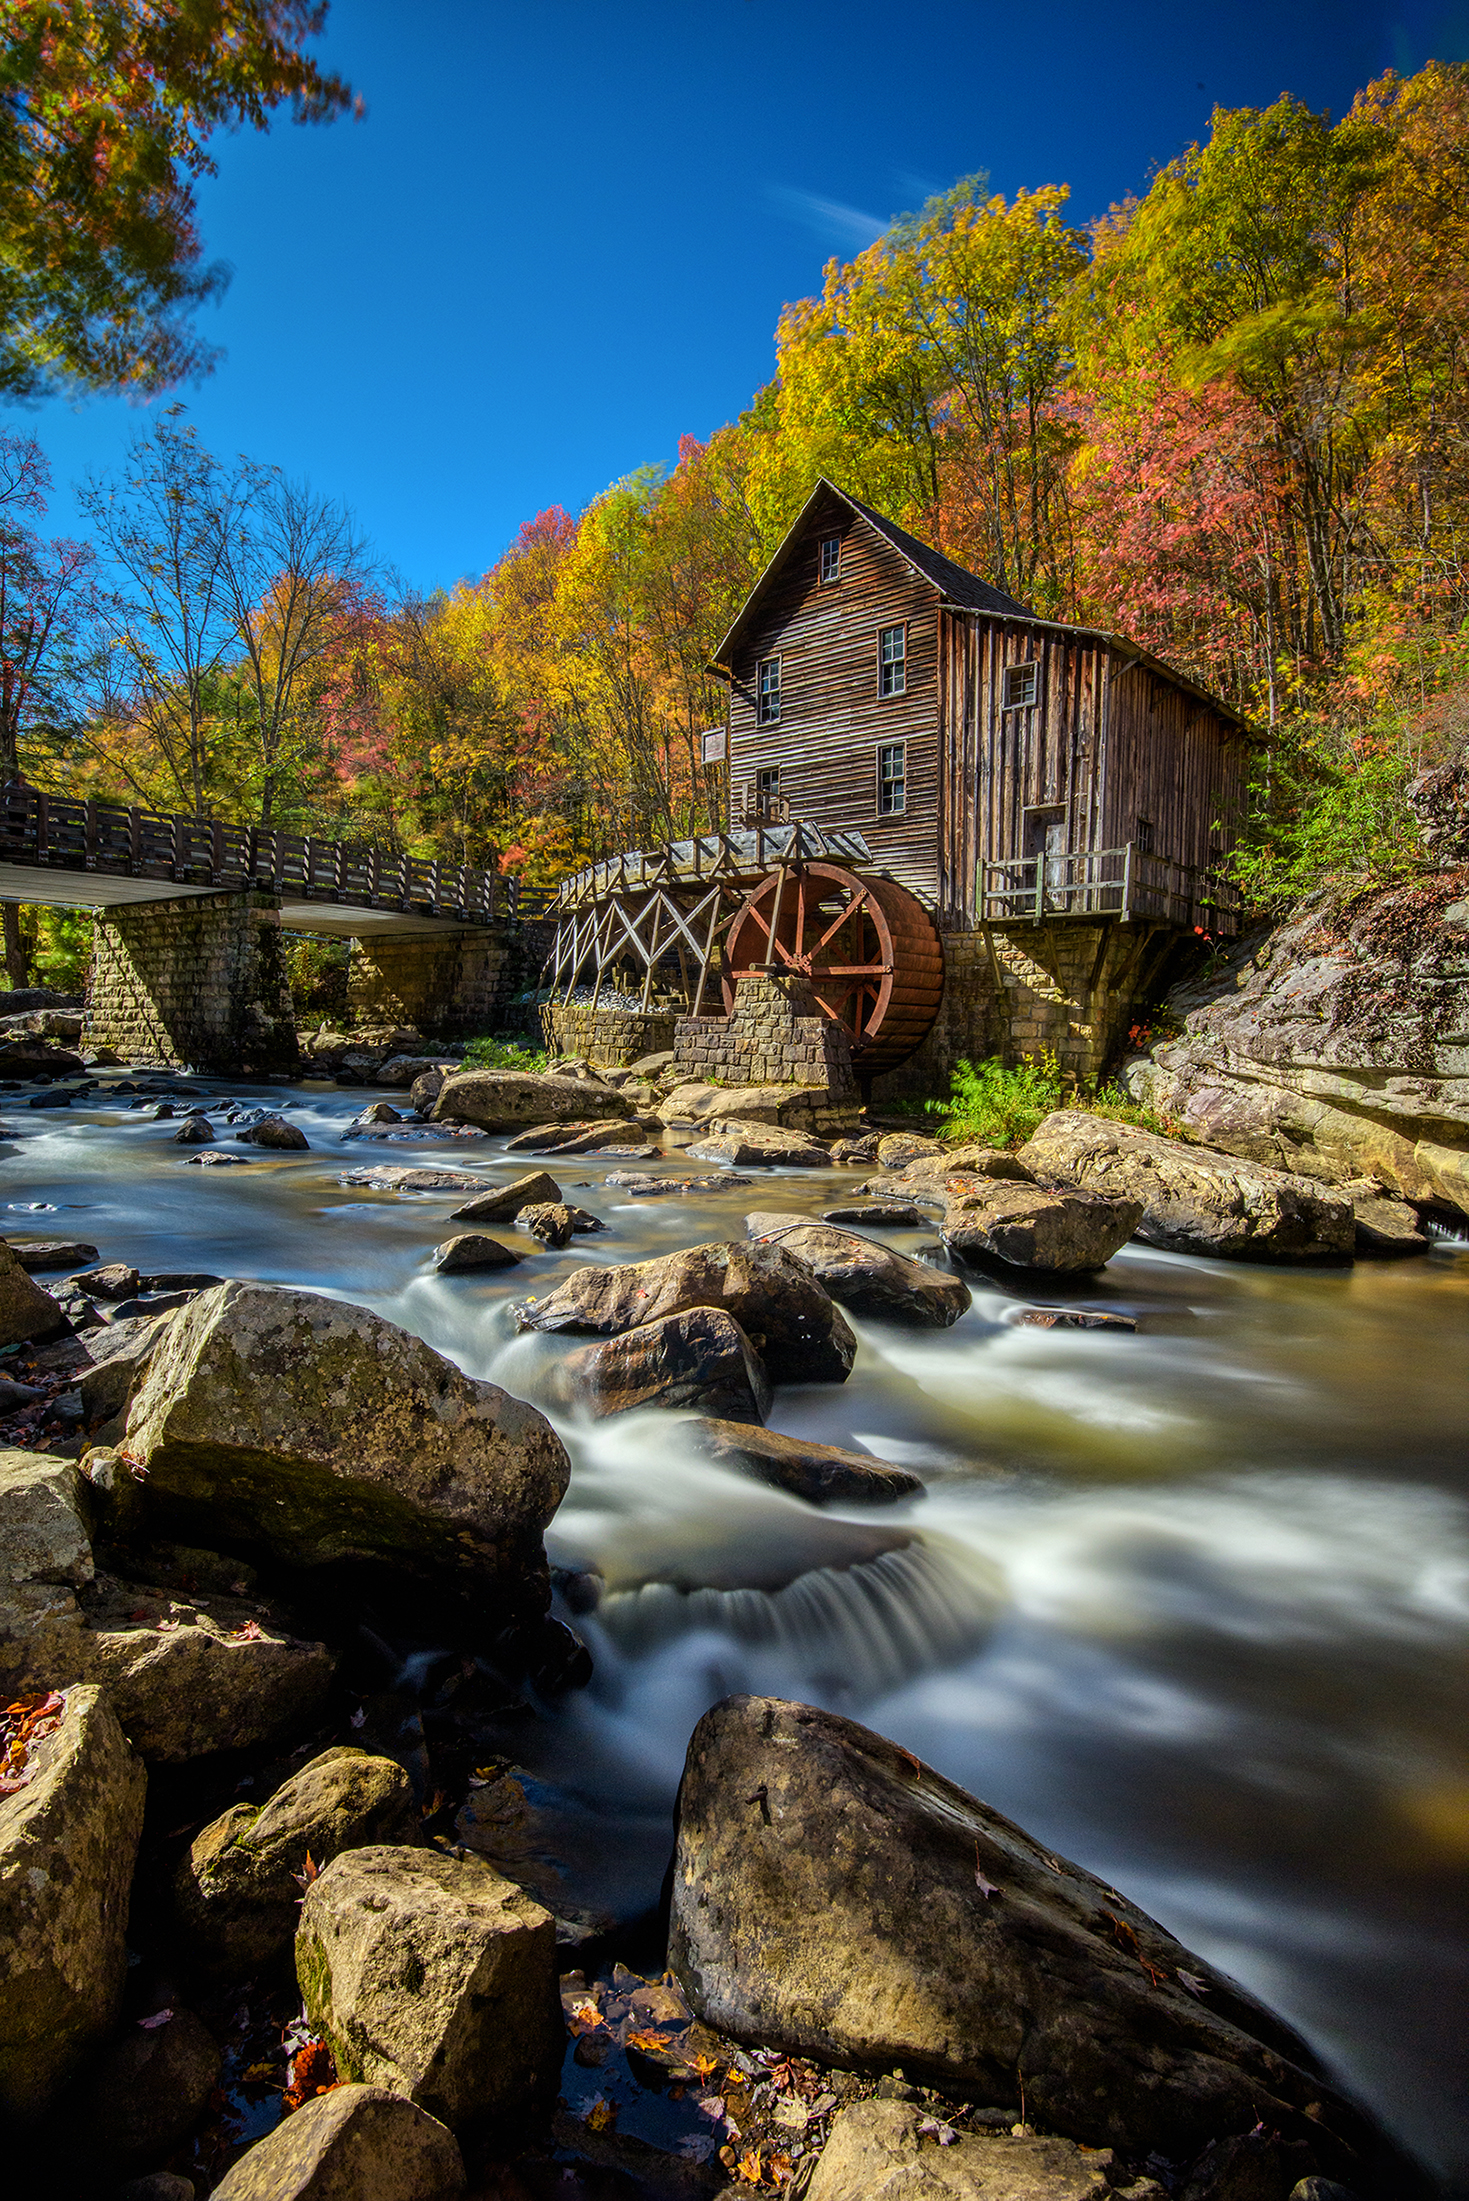 Picturesque watermill in autumn